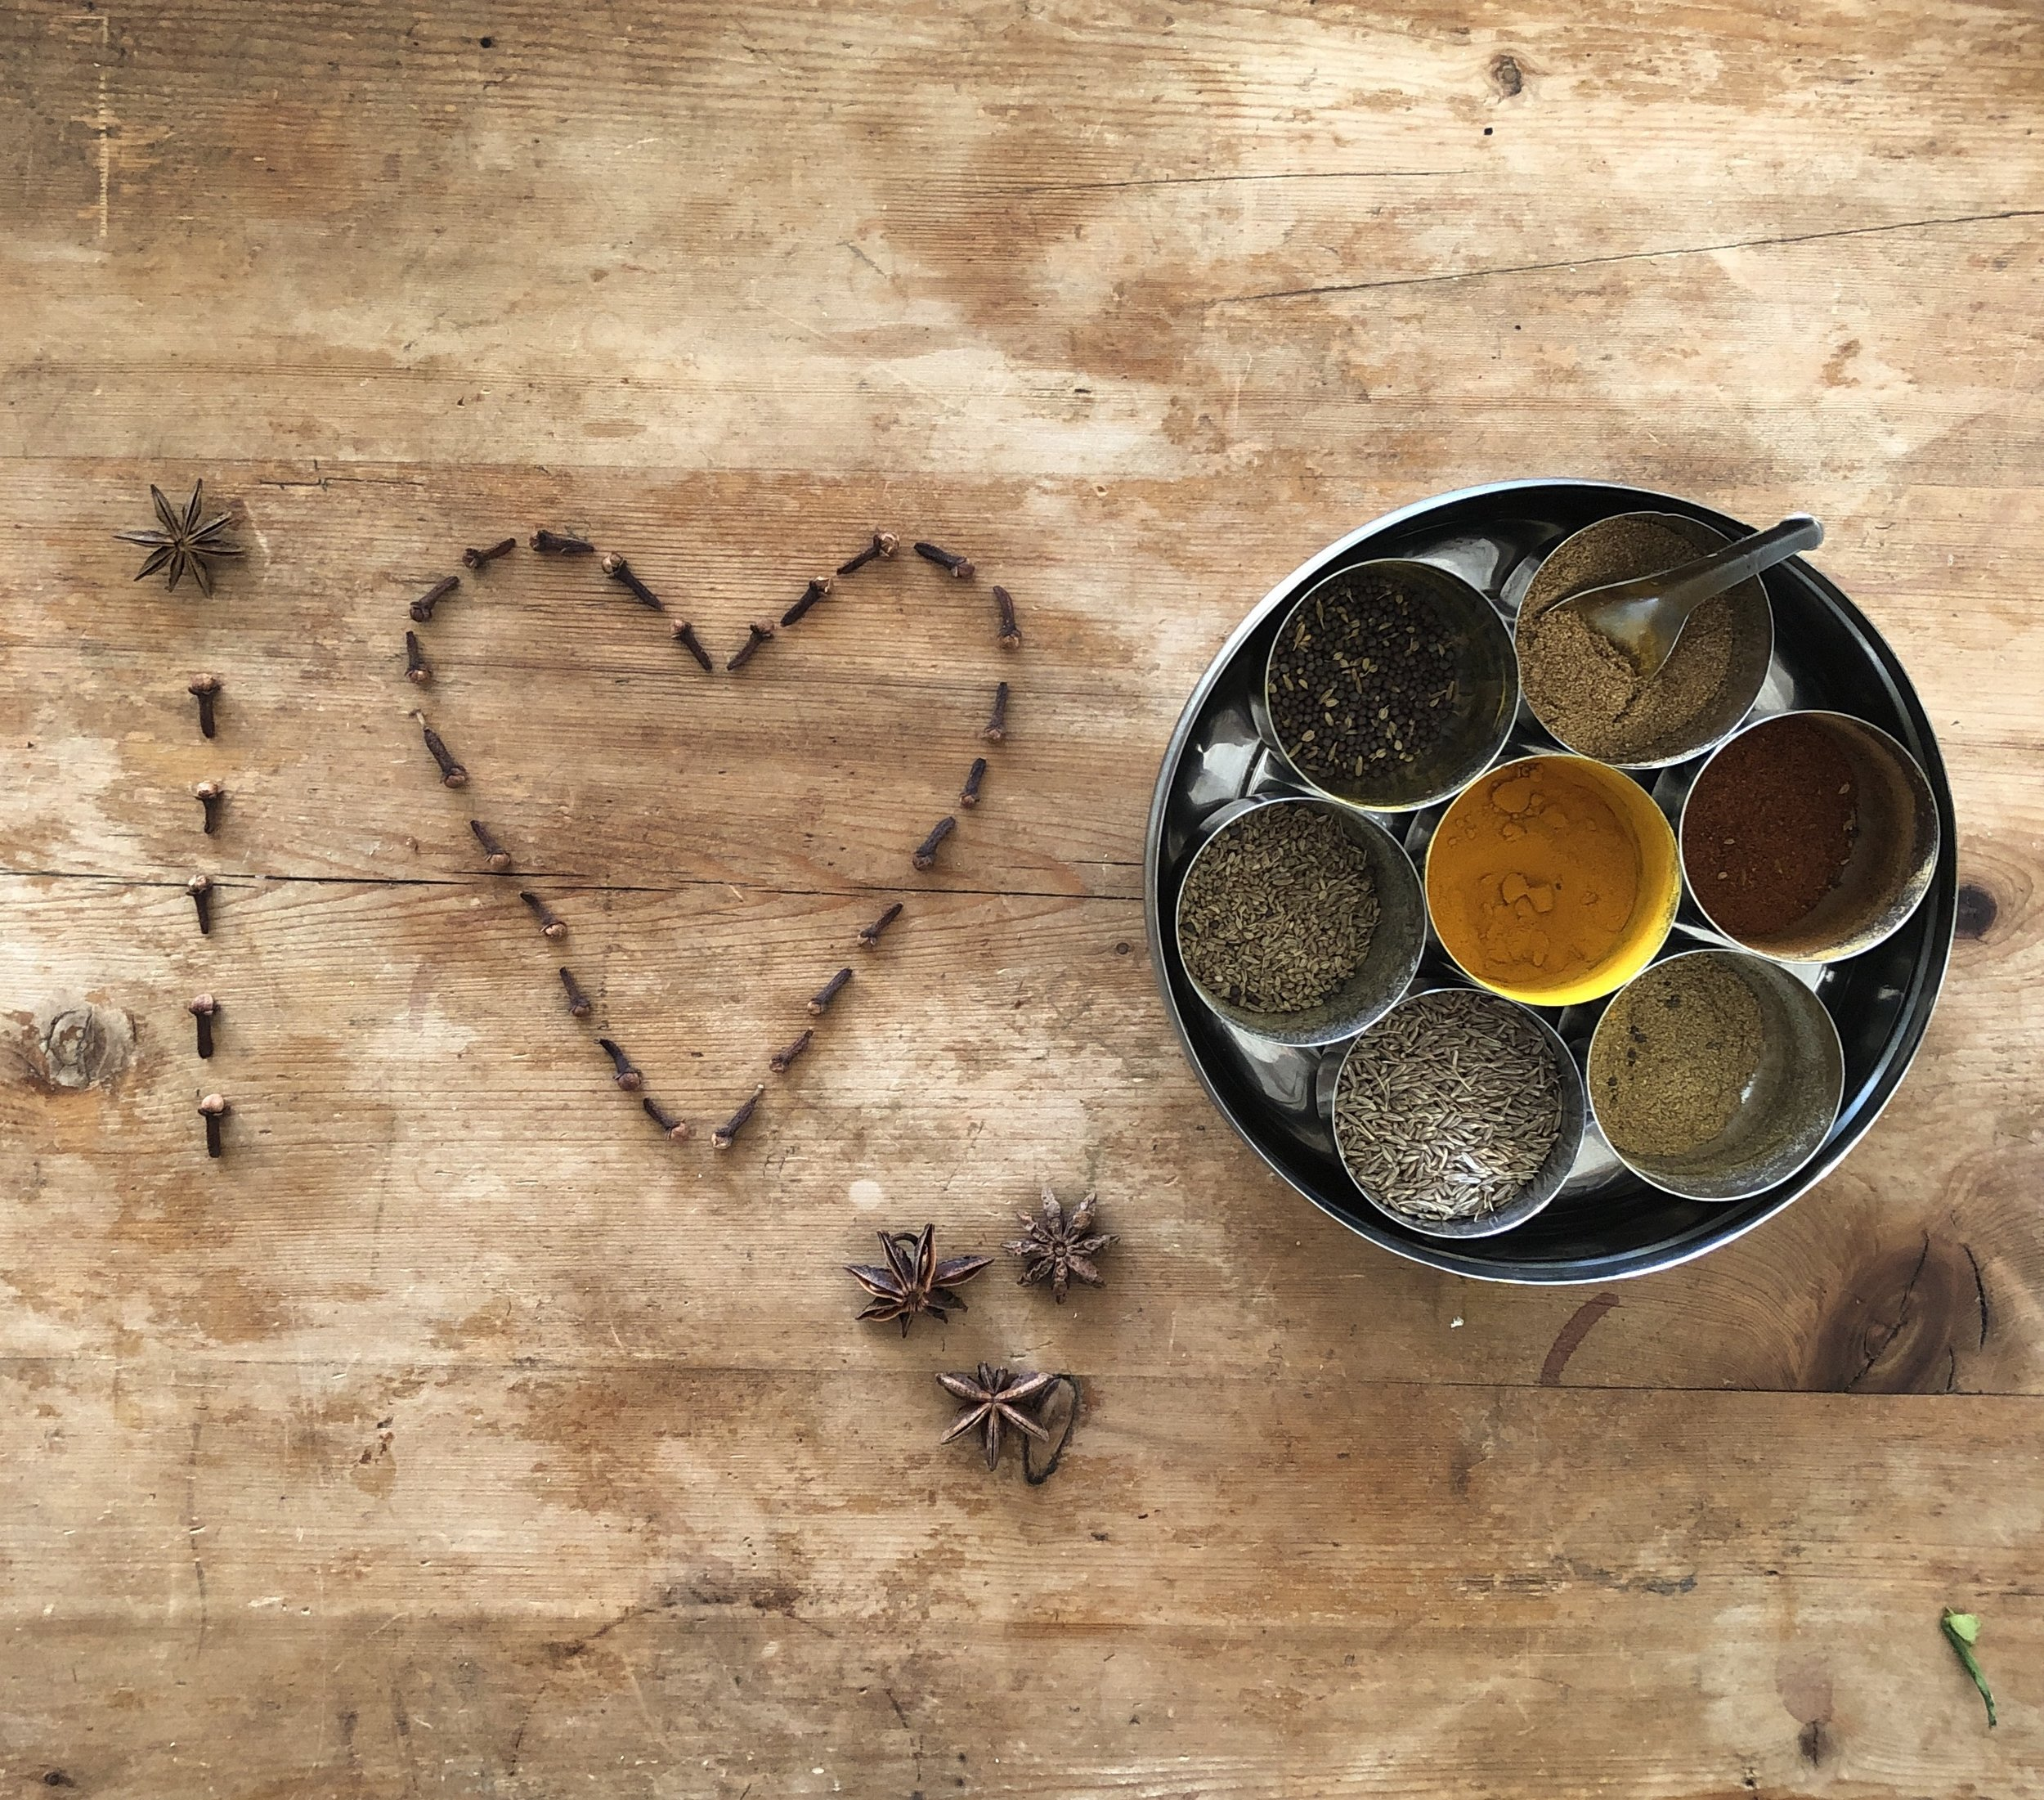 At home with my Indian spice box.